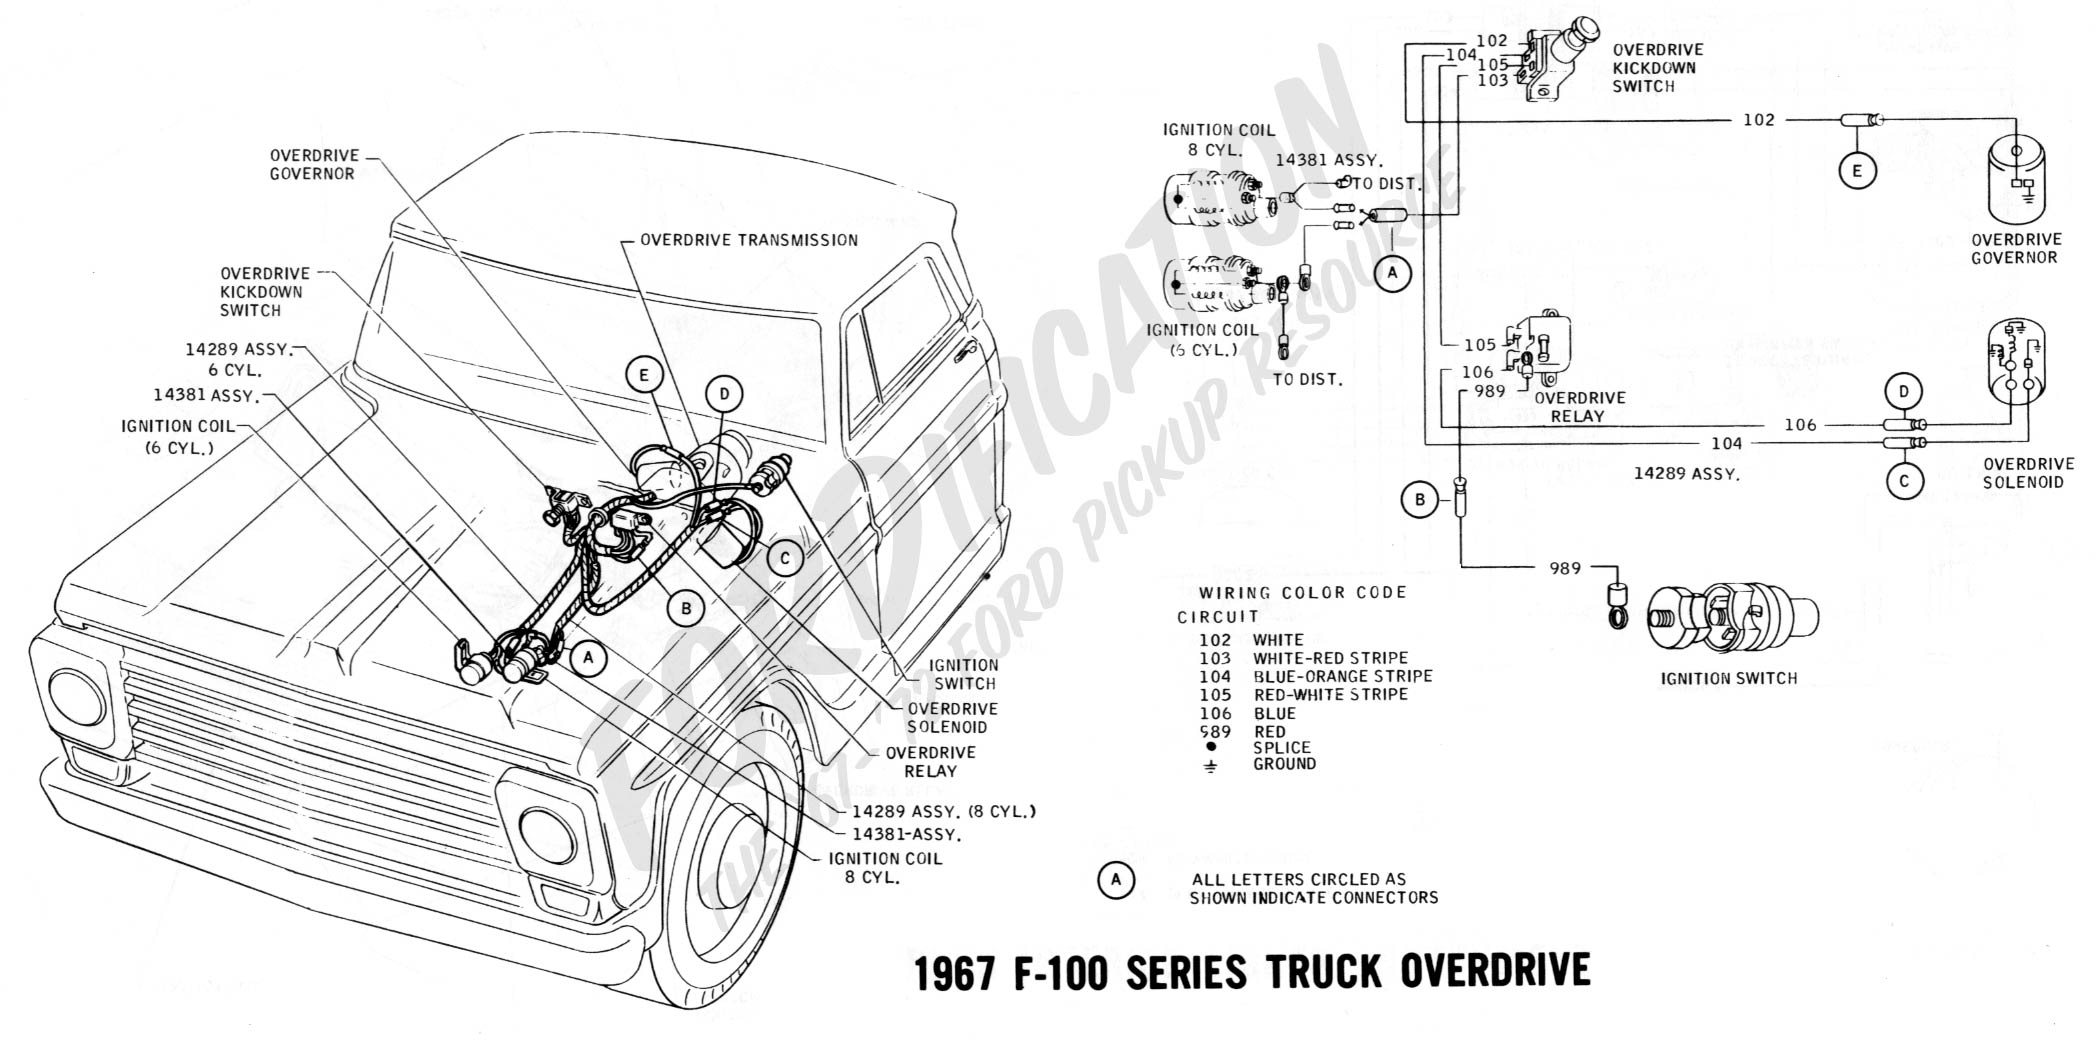 Showthread furthermore 1992 Gmc L05 5 7 Firing Order moreover Ford F150 F250 How To Replace Serpentine Belt 359906 further 4qfy3 Chevy Silverado No Reverse Truck Fwd Gears Work Fine also 2012 F250 Fuse Panel Diagram. on 1990 chevy 350 engine parts diagram